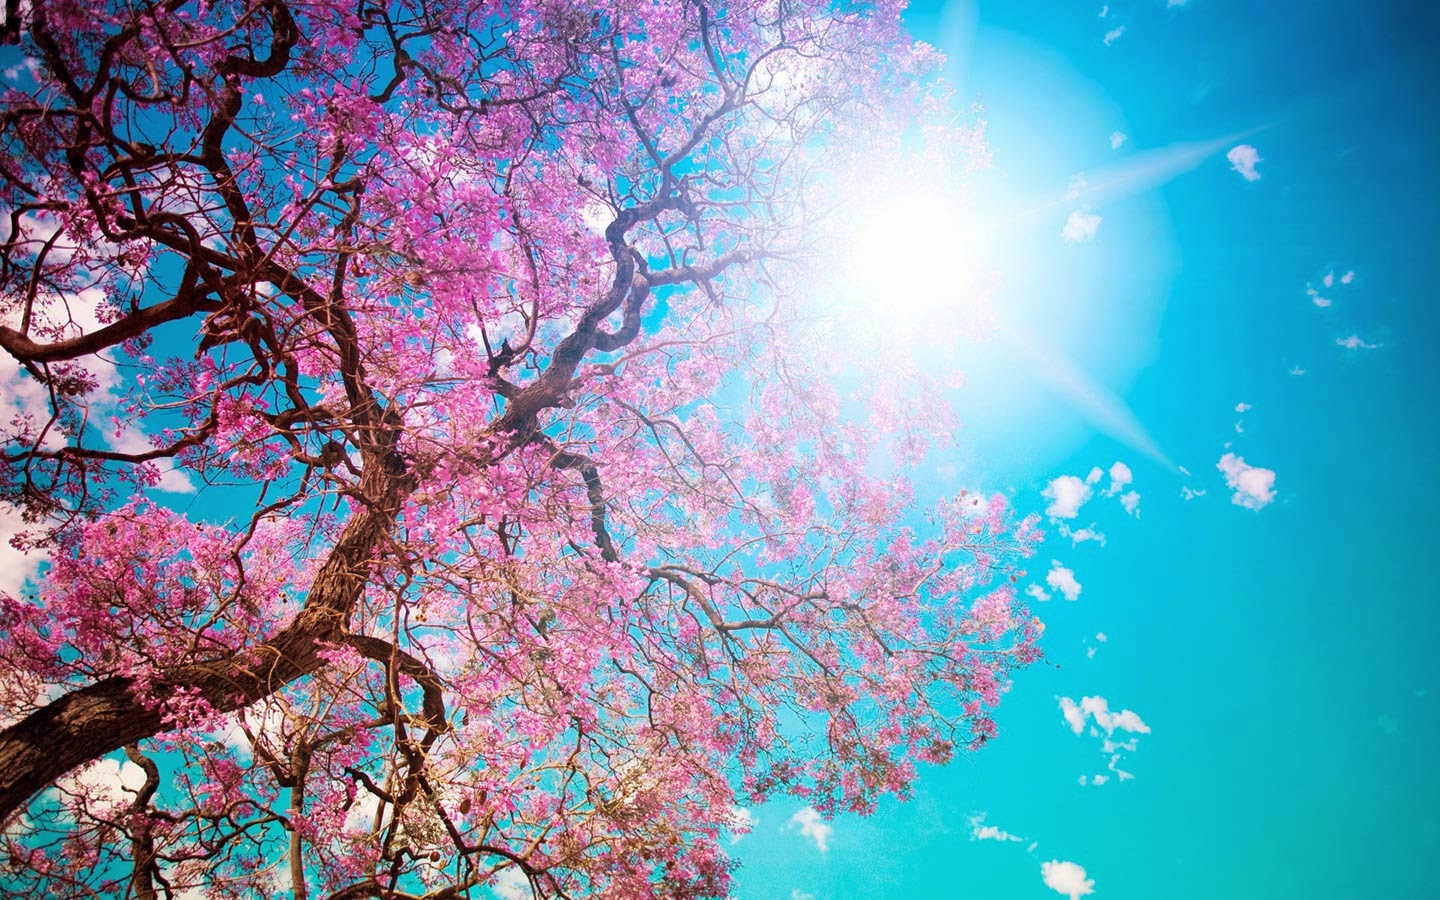 Free Desktop Wallpaper Spring